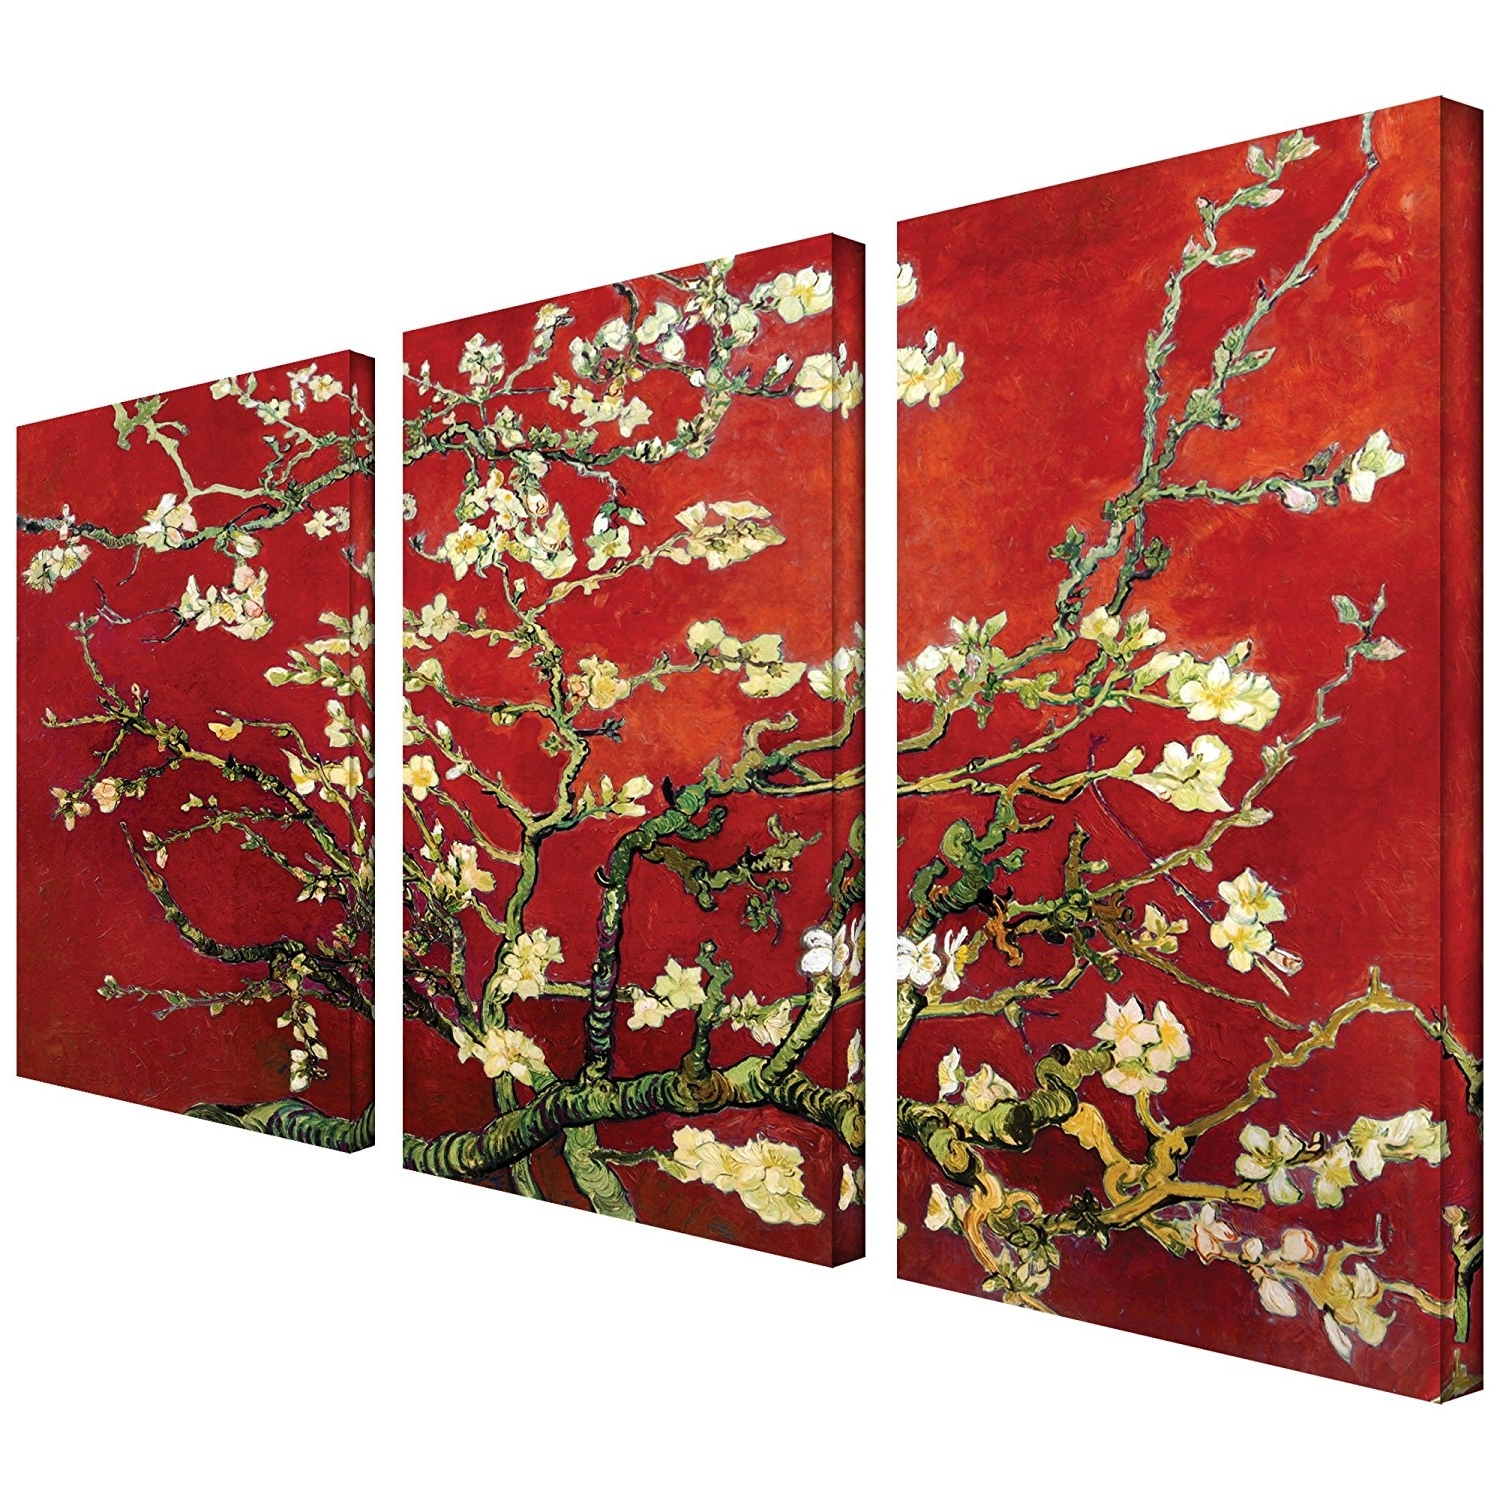 Best And Newest Almond Blossoms Vincent Van Gogh Wall Art In Amazon: Art Wall 3 Piece Almond Blossom Gallery Wrapped Canvas (View 10 of 15)